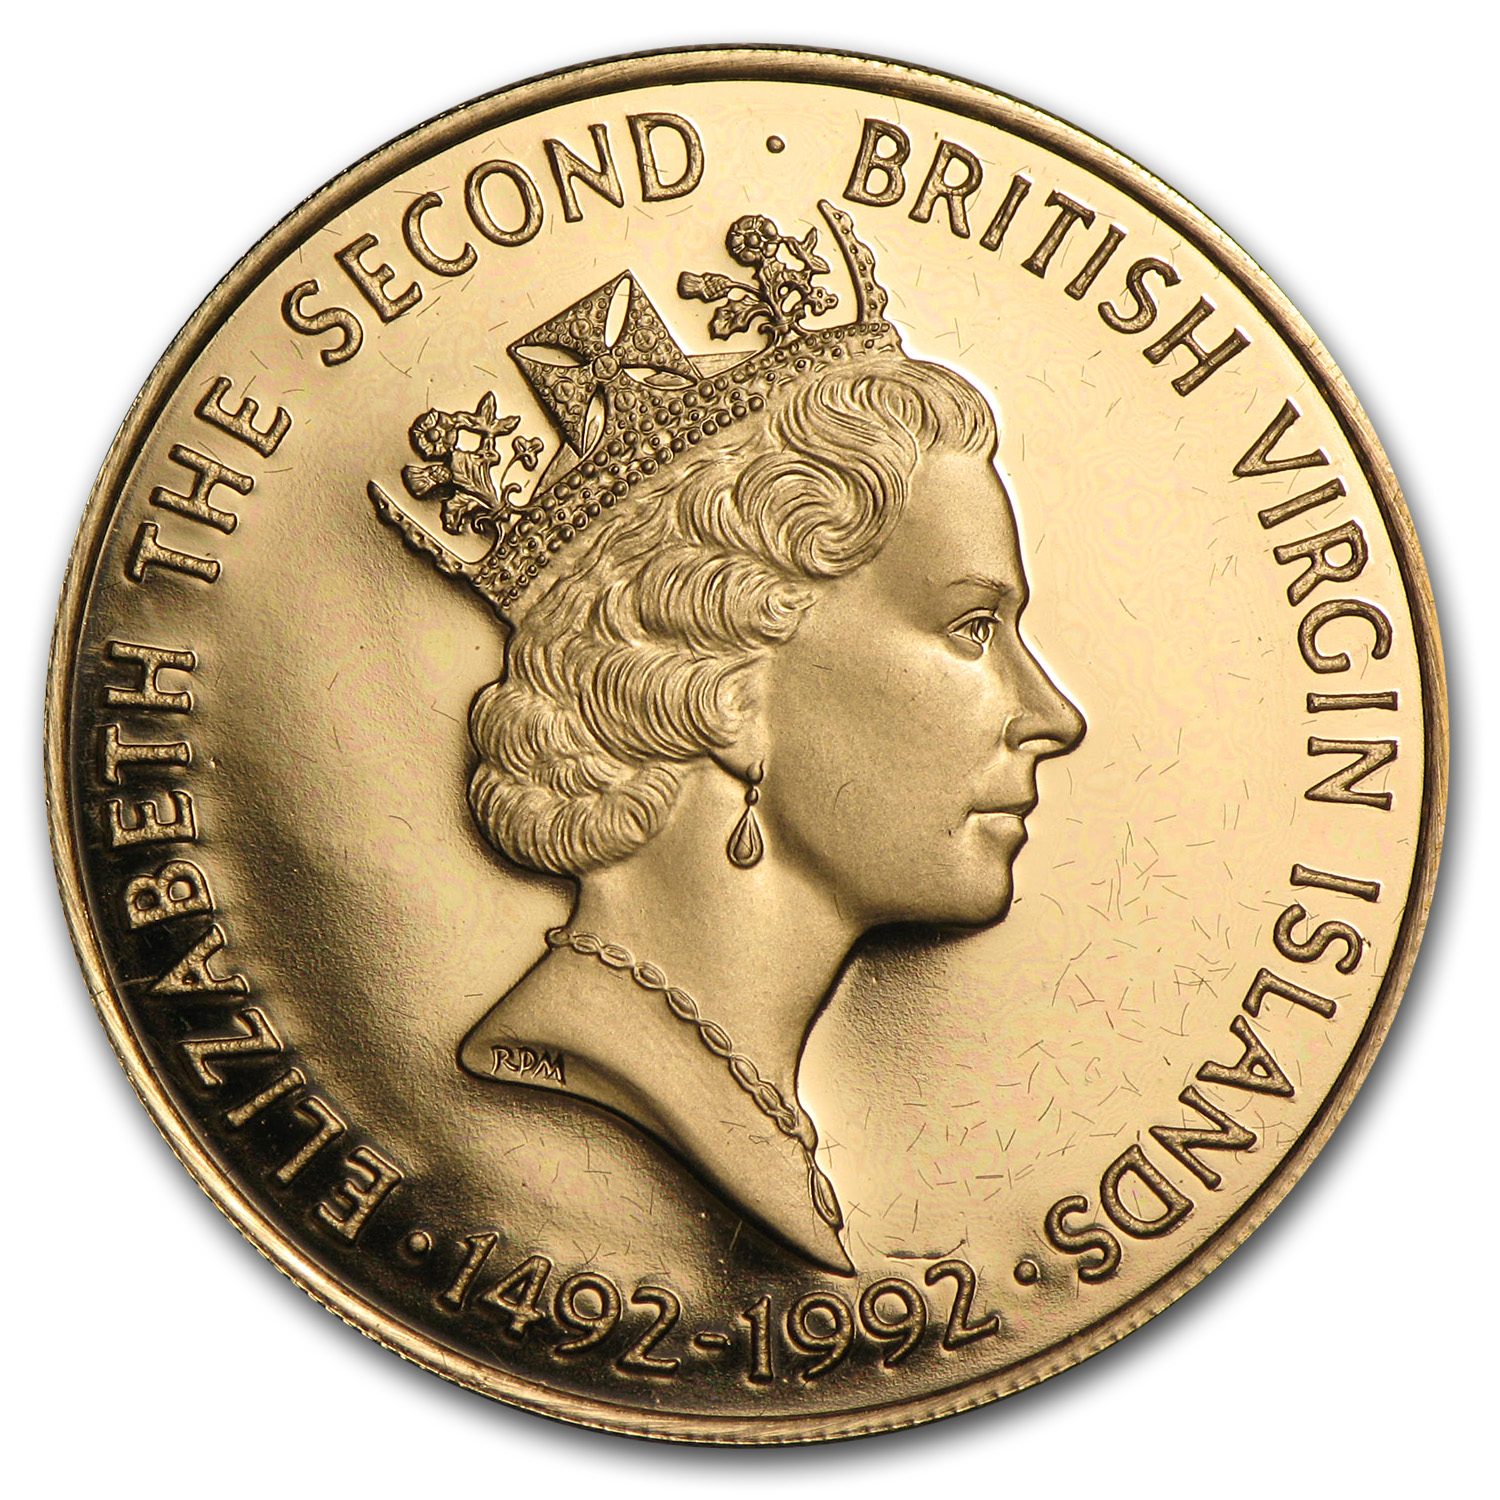 British Virgin Islands 1992 $250 Gold Proof Columbus